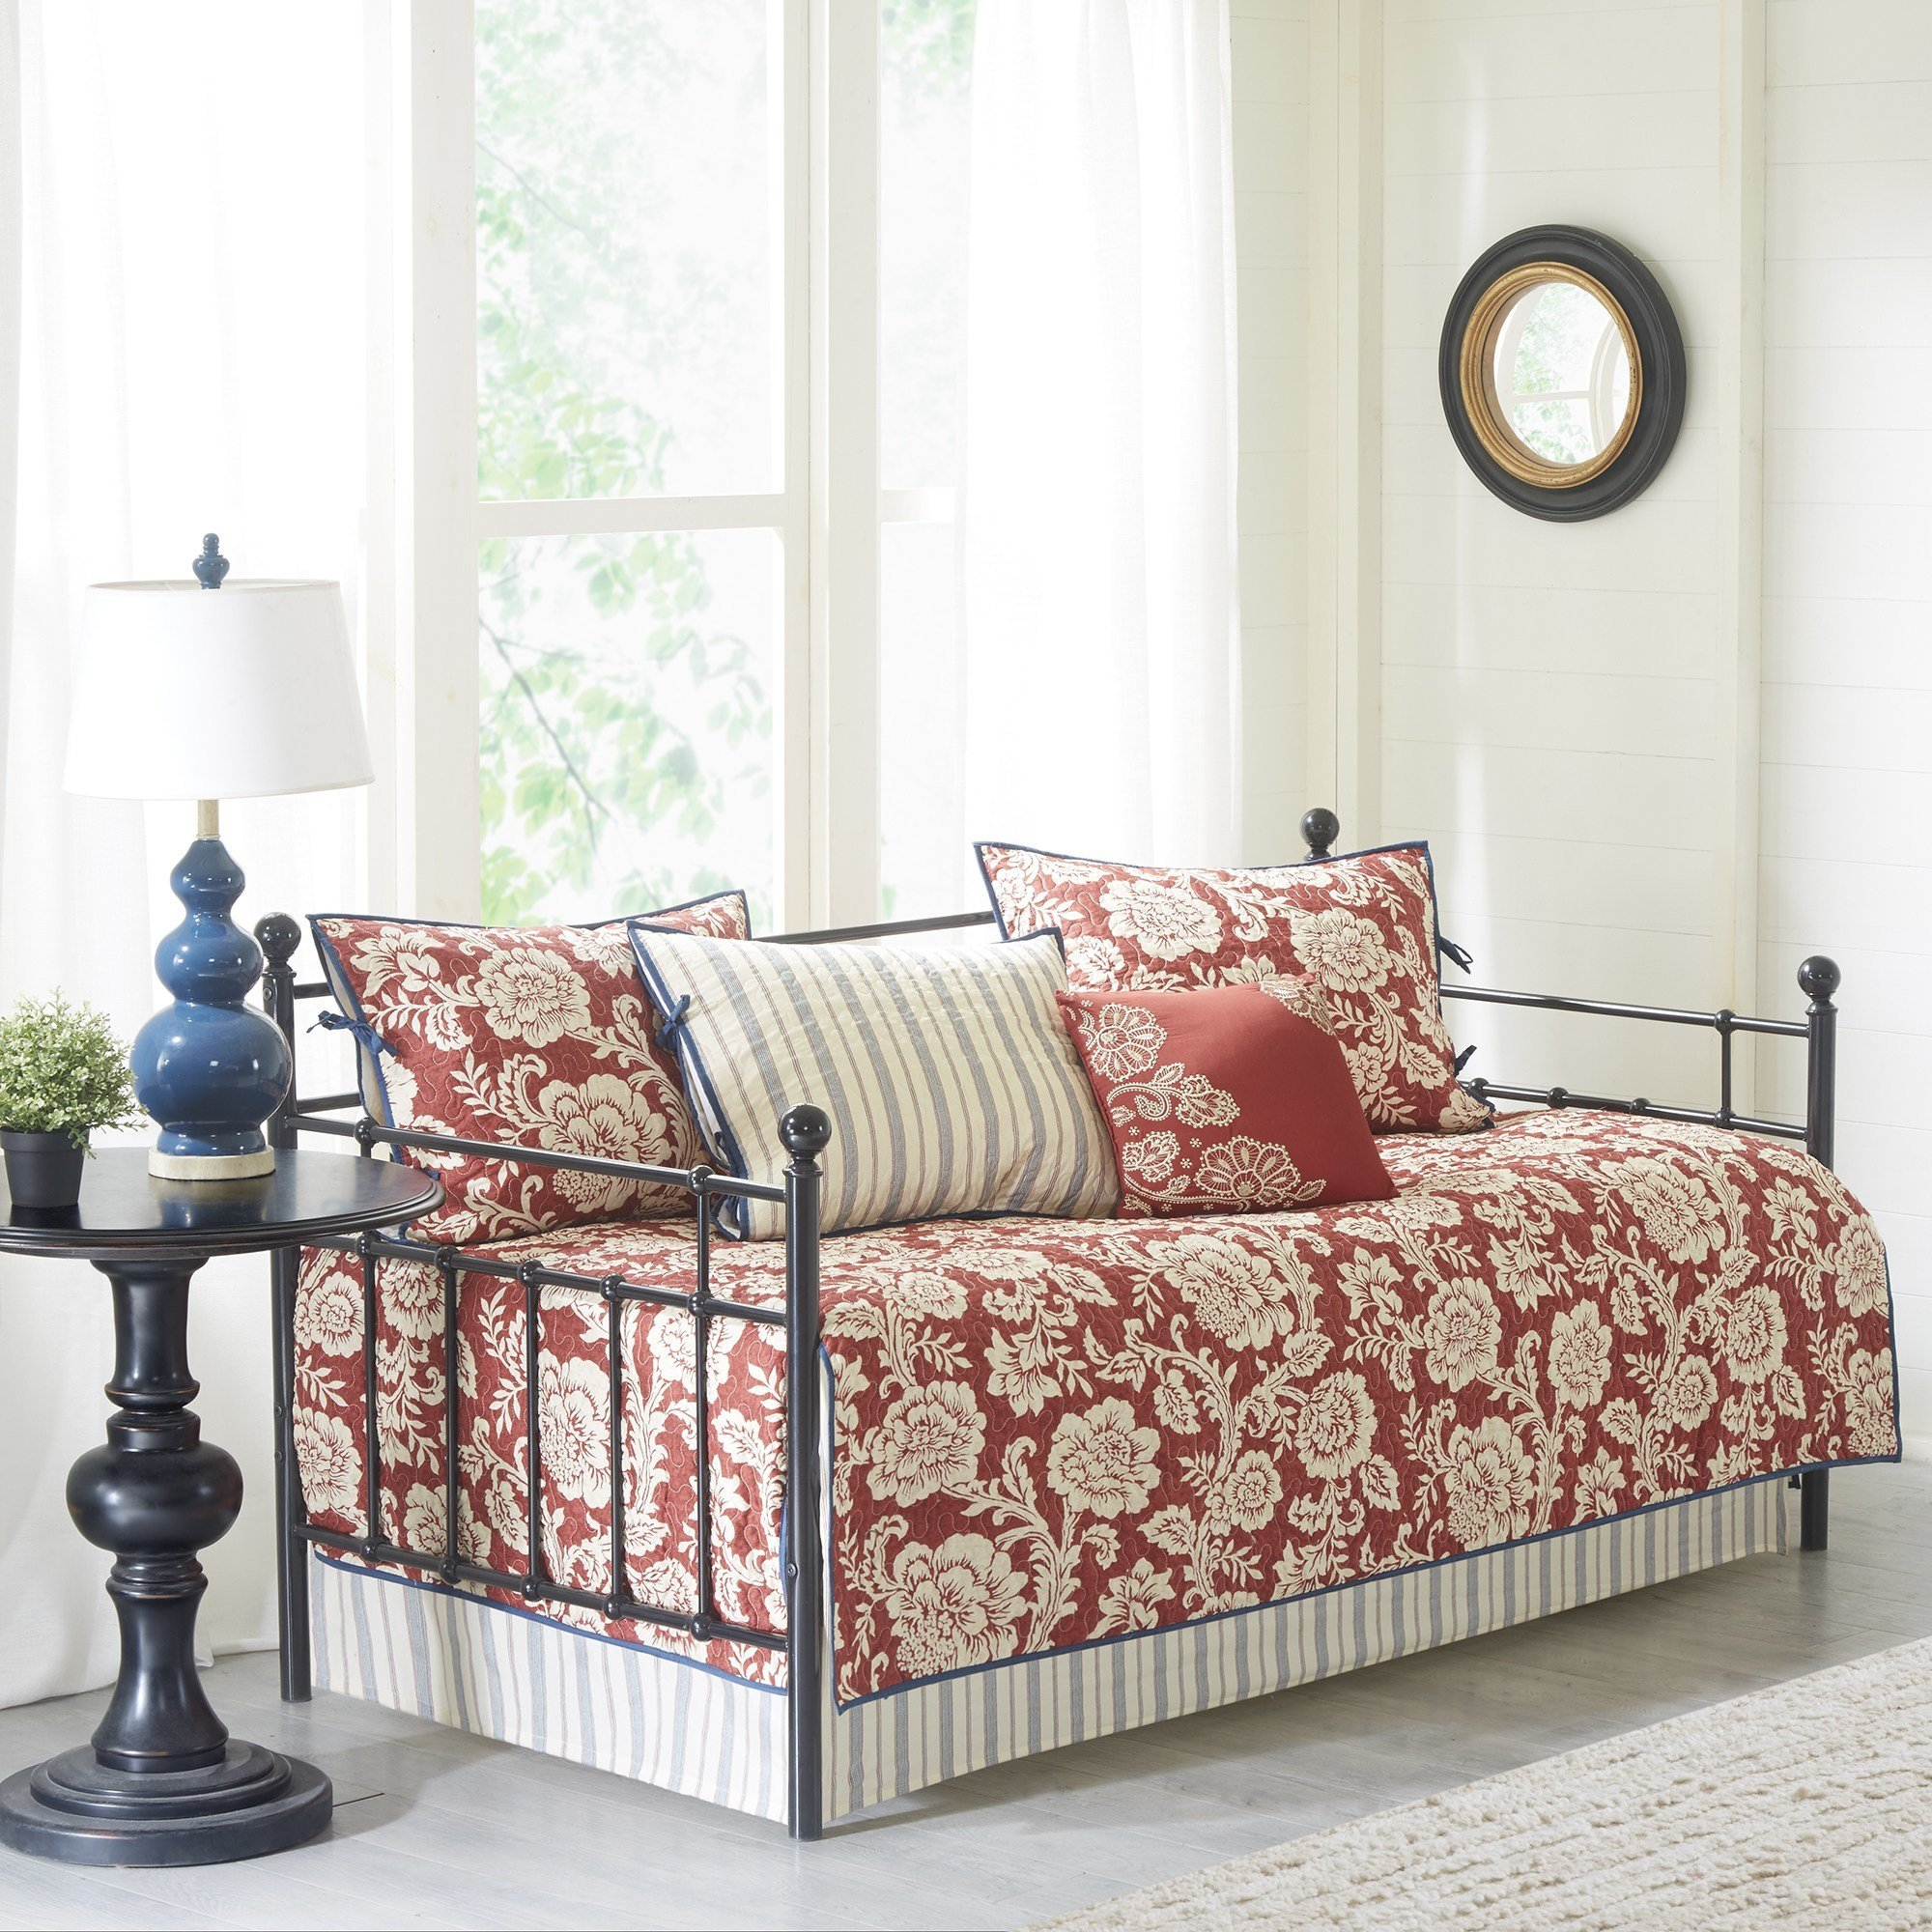 6 Piece Red White Floral Daybed Set Bedding, Geometric French Country Shabby Chic Motif Flower Traditional Pattern Day Bed Bedskirt Pillows, Polyester